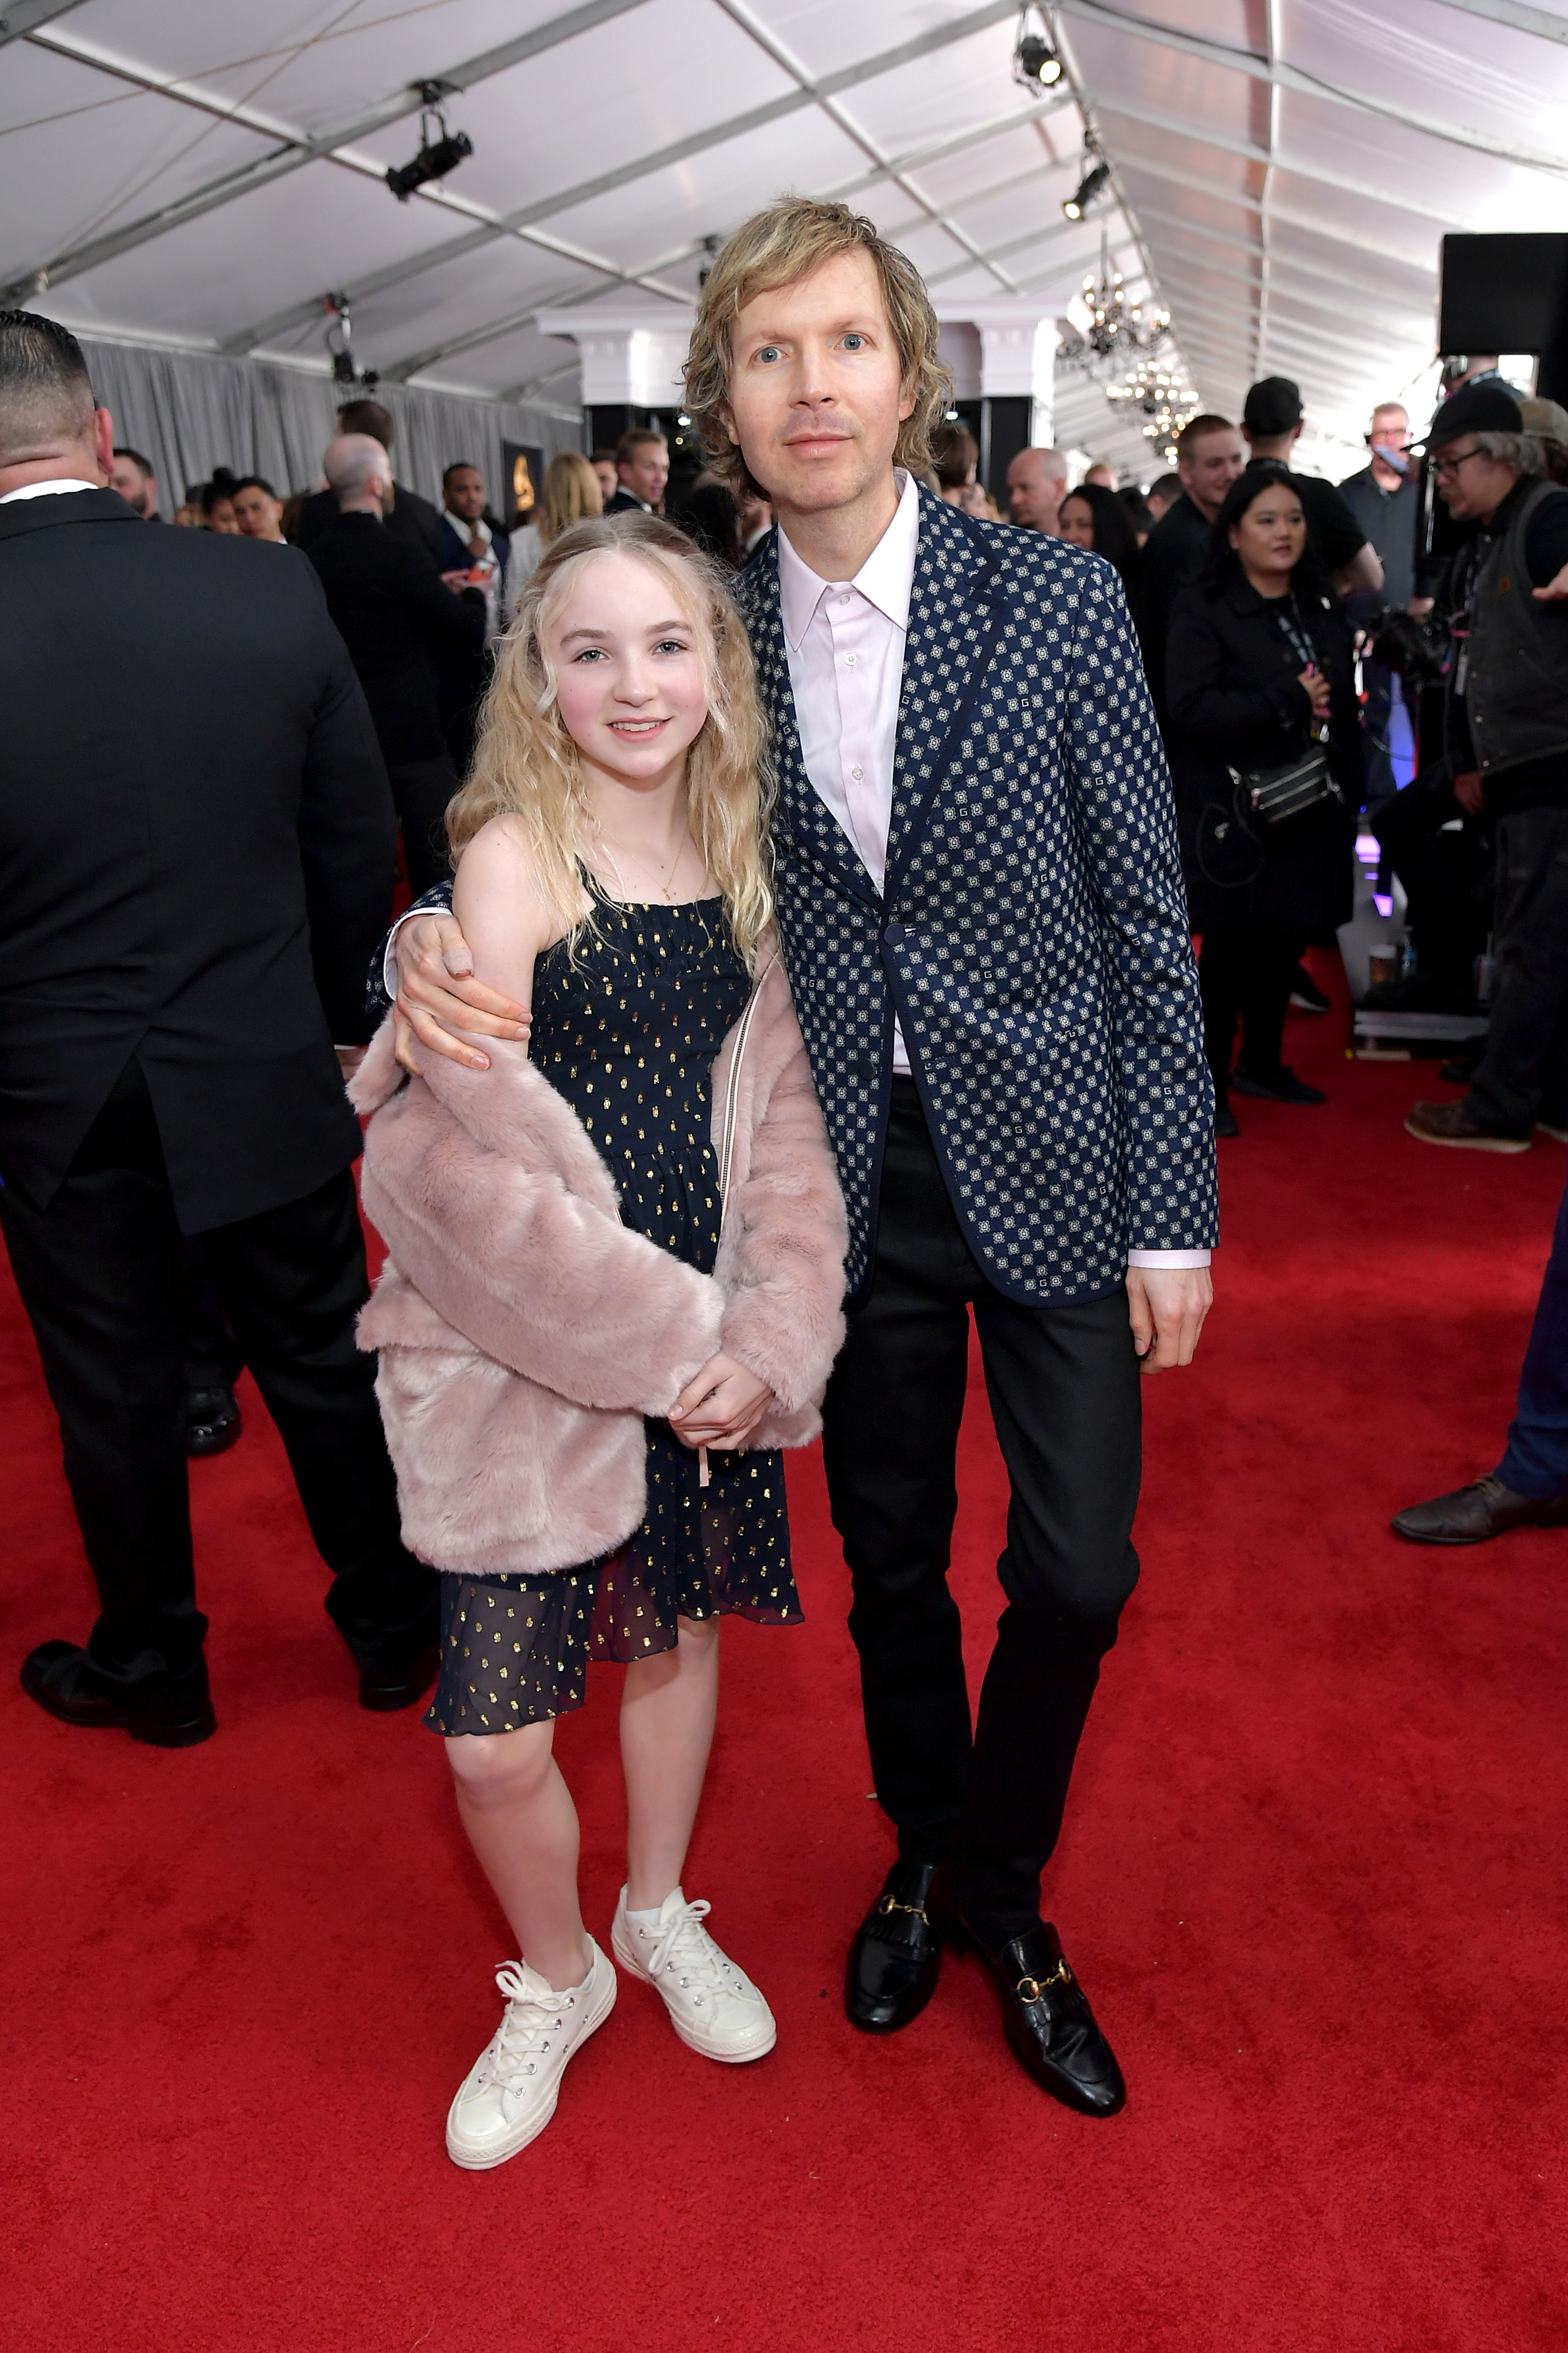 Grammys 2019: Shawn Mendes, Miley Cyrus and More Stars Who Brought Family Members as Dates - The Best Alternative Music Album winner brought his 11-year-old daughter, Tuesday, to the show.